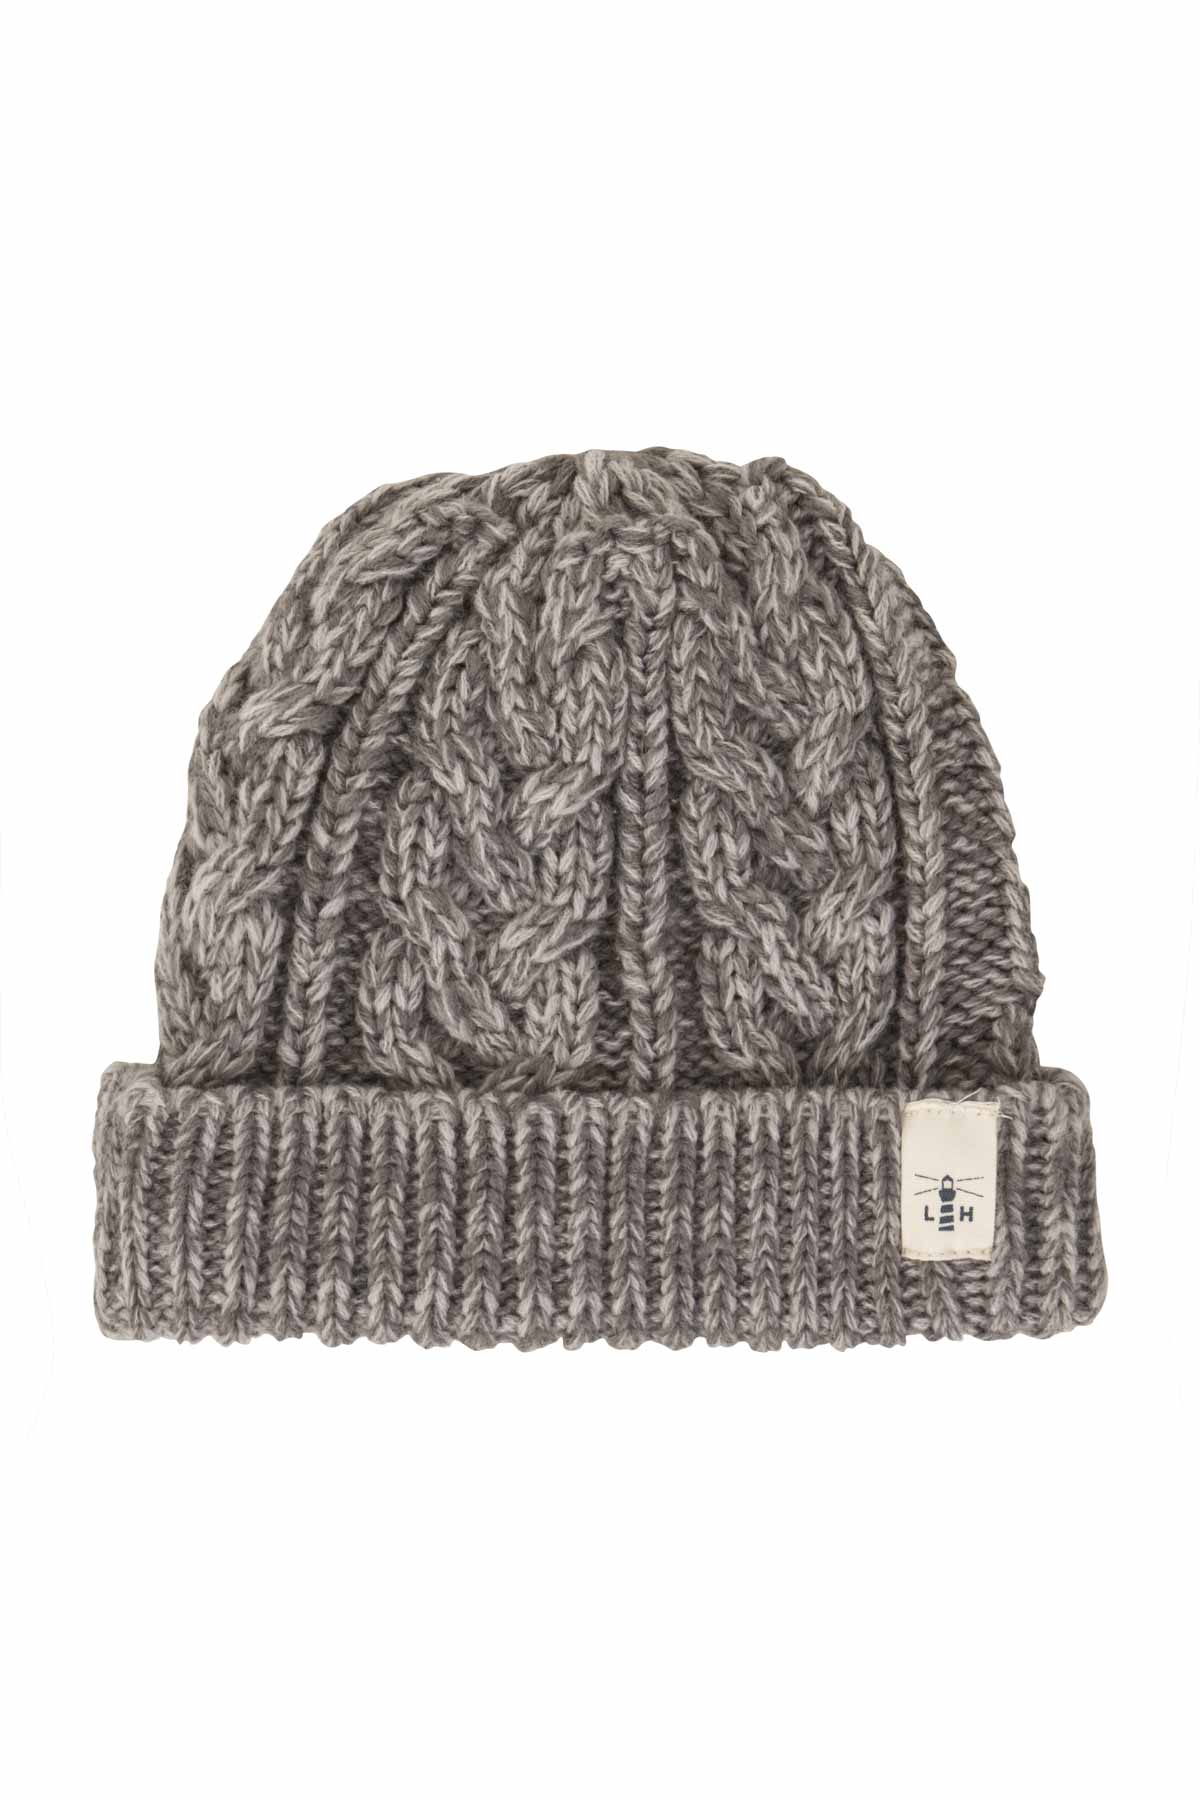 6a1b3bb98d8 Lighthouse Hannah Womens Beanie Bobble Hat